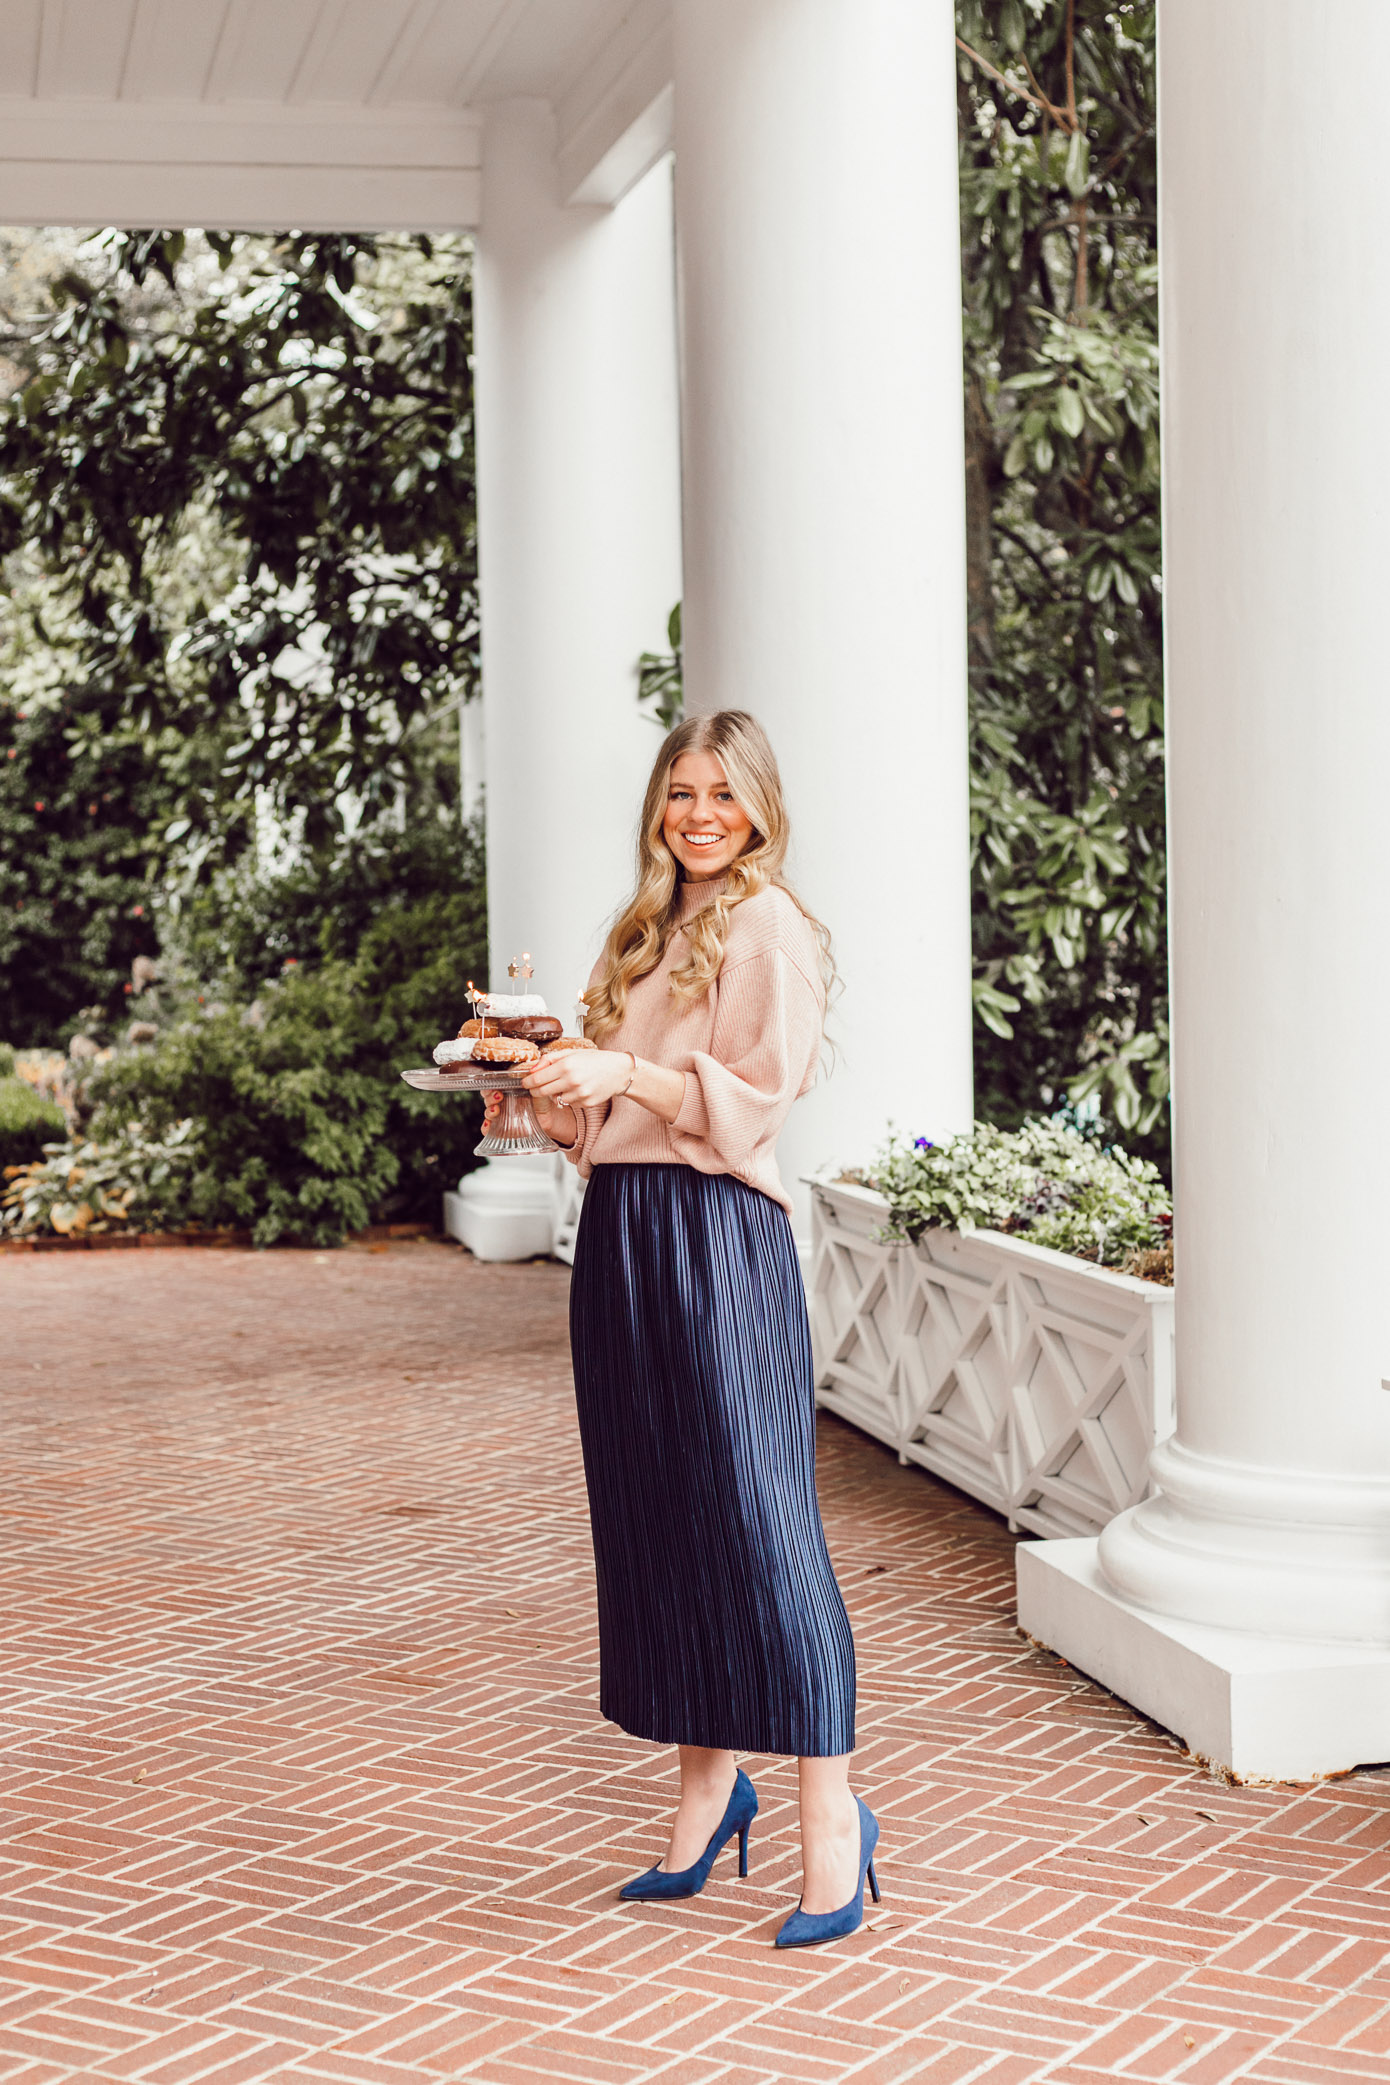 29 Life Lessons Learned featured on Louella Reese Blog for her 29th Birthday | Tibi Plissé Midi Skirt, Line and Dot Blush Cropped Sweater